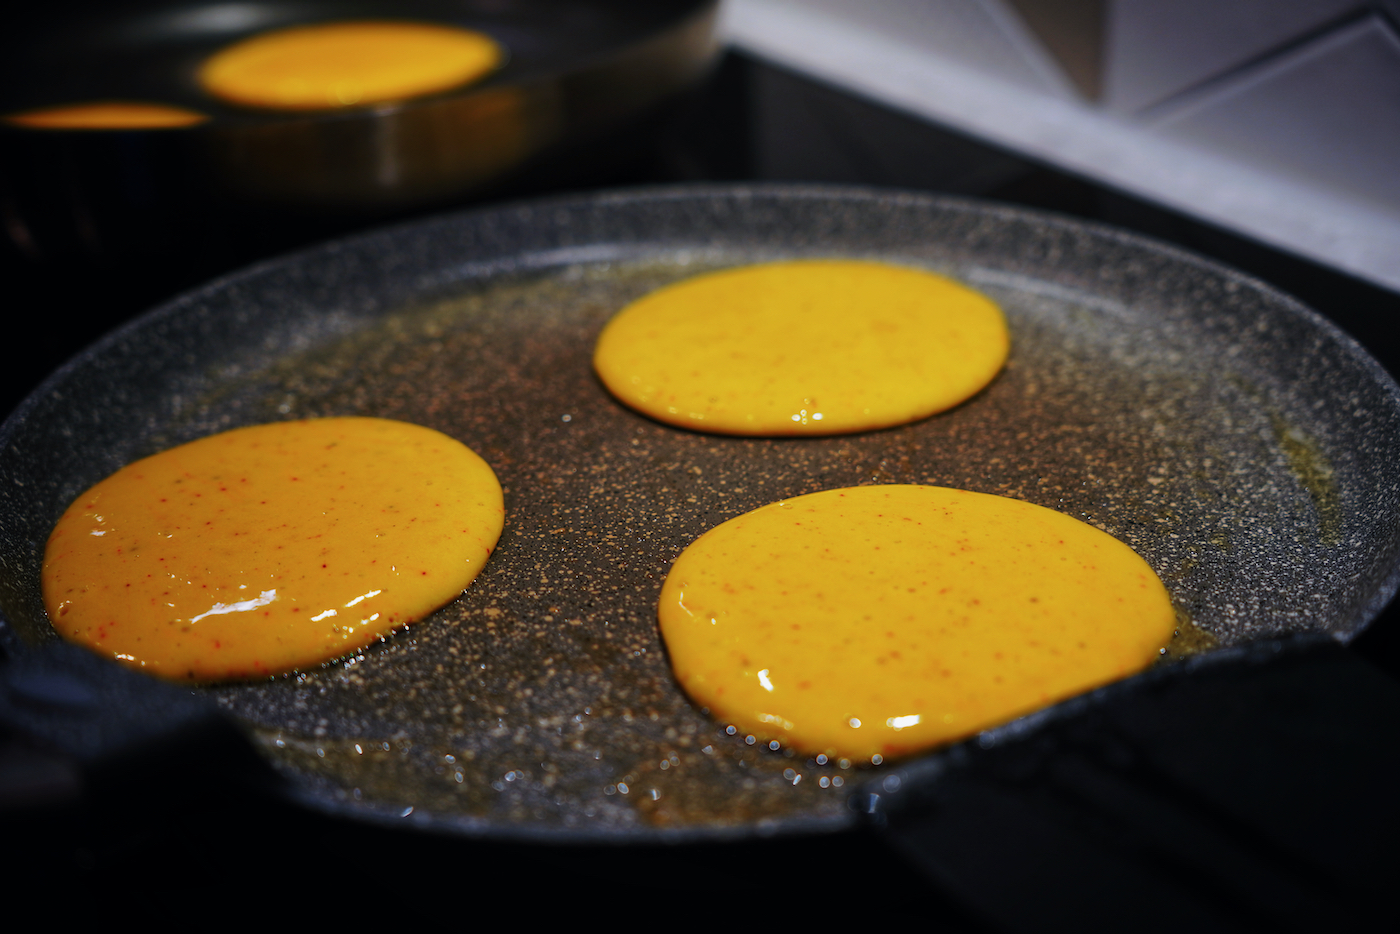 Banana and saffron pancakes in the pan